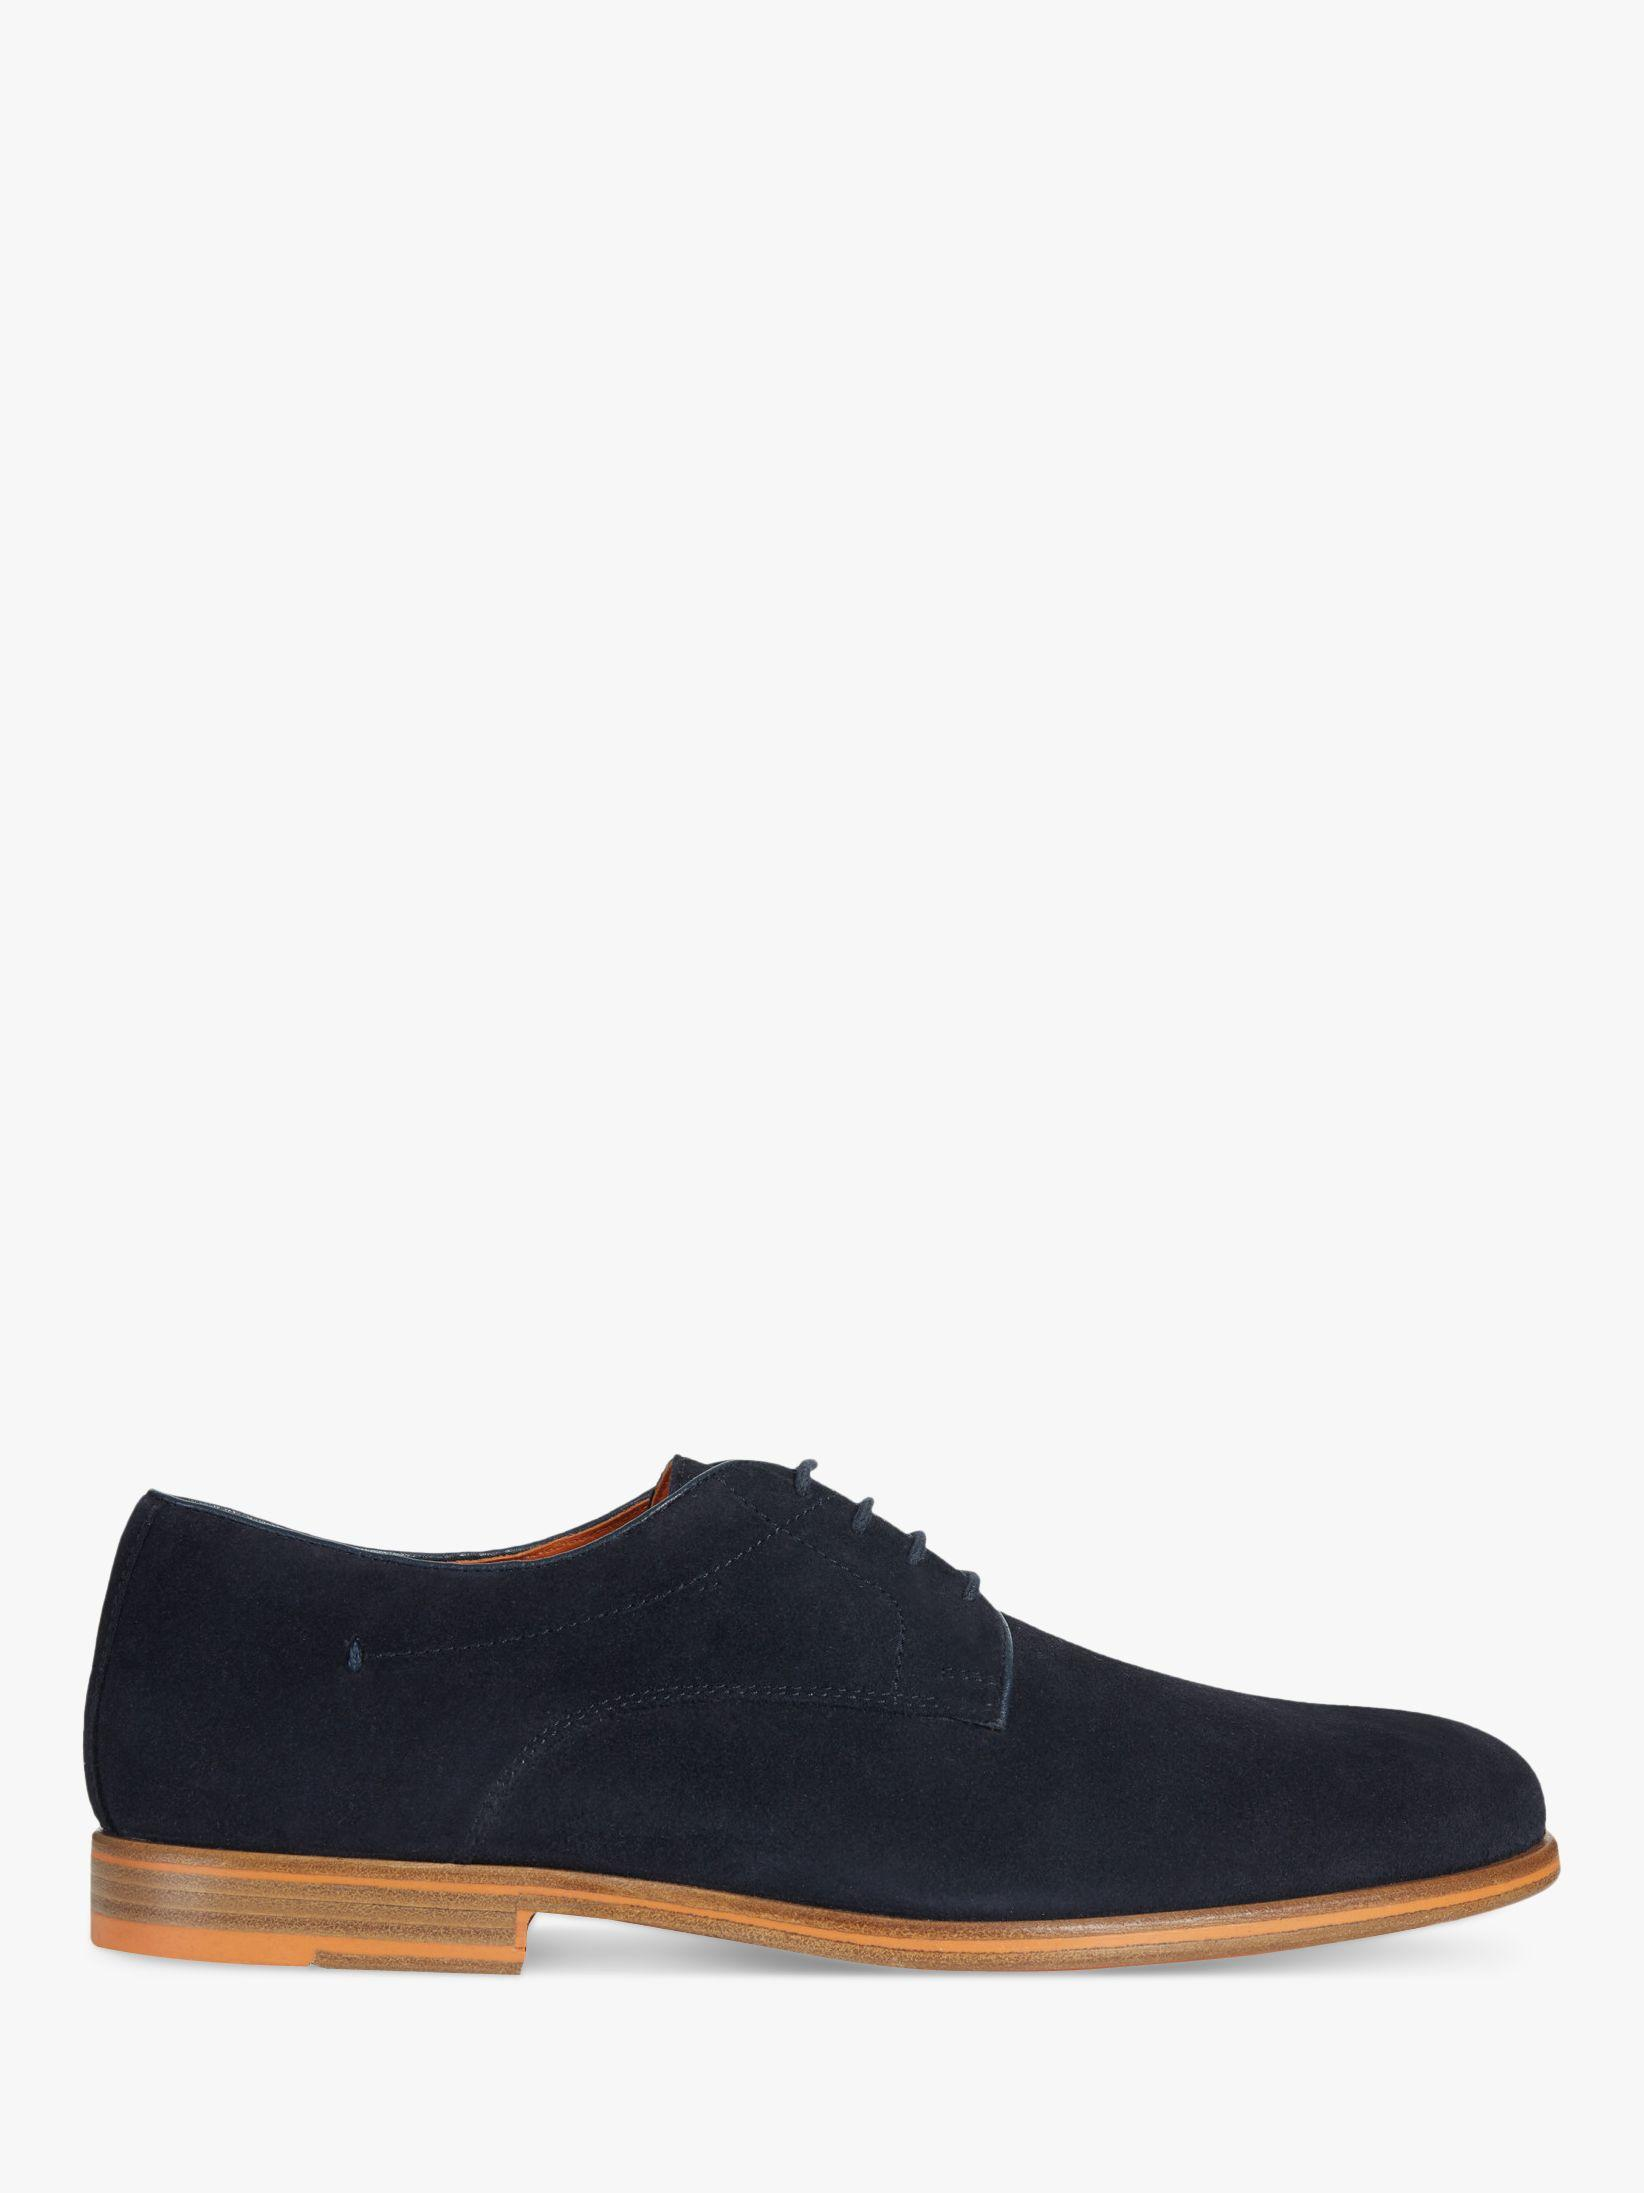 5b2dfb39b0 Geox. Men's Blue Bayle Suede Derby Shoes. £125 From John Lewis and Partners